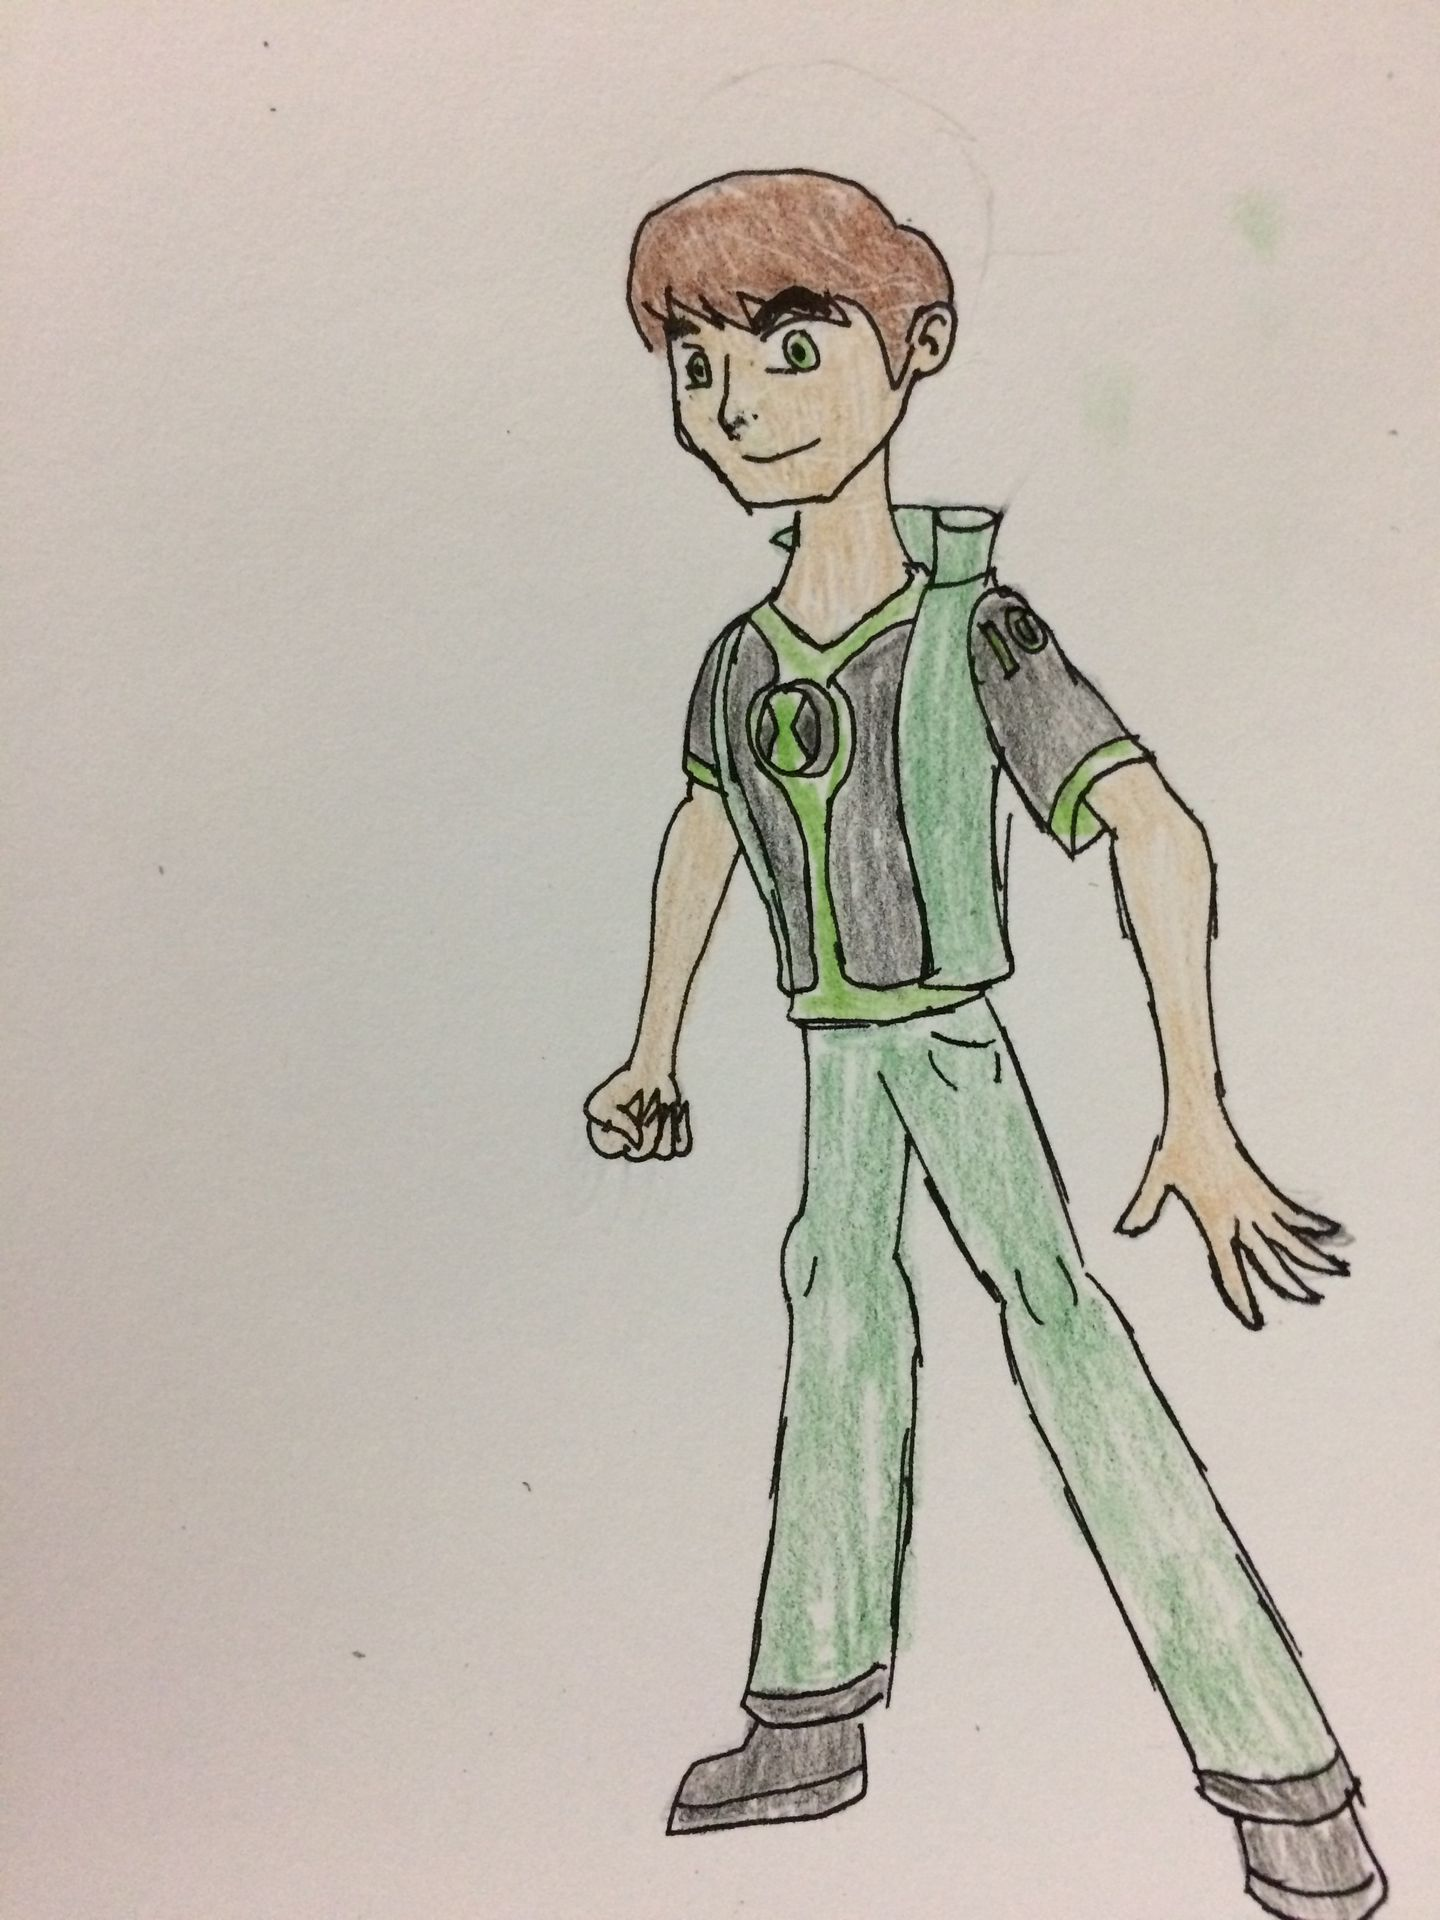 Ben 10 the birth of Omni - Wattpad